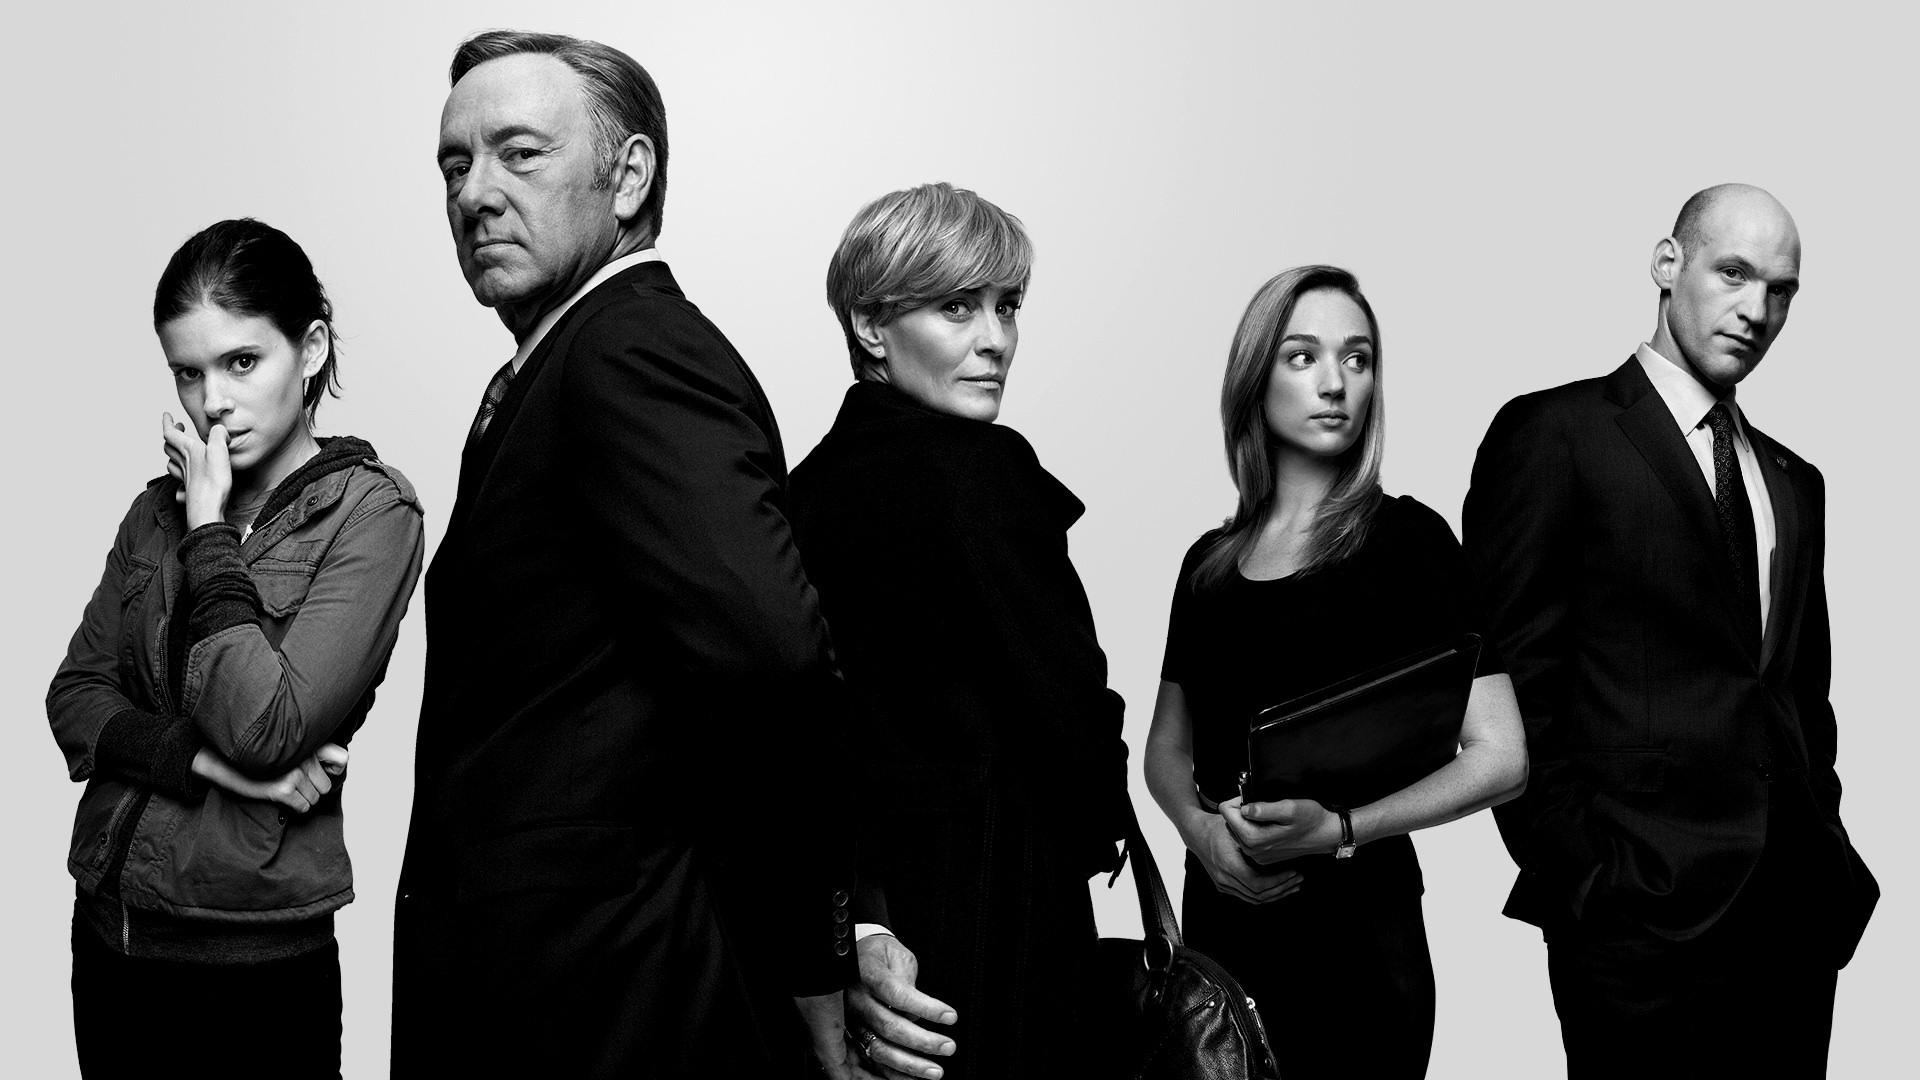 House Of Cards Wallpaper Hd Download